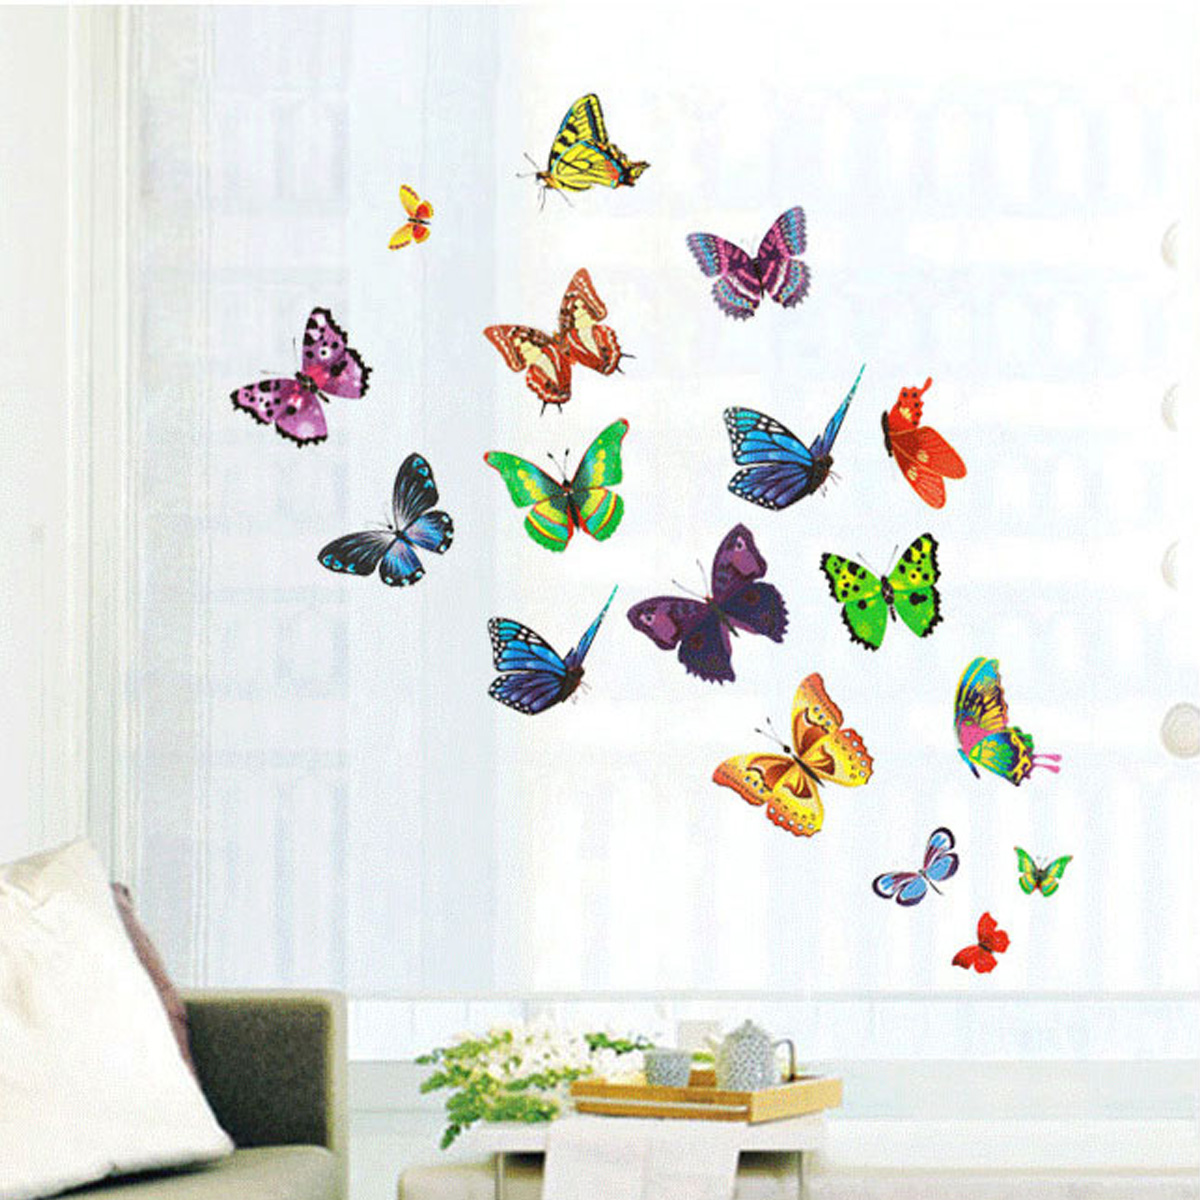 Diy 17 butterflies wall stickers mural art decals for Butterfly wall mural